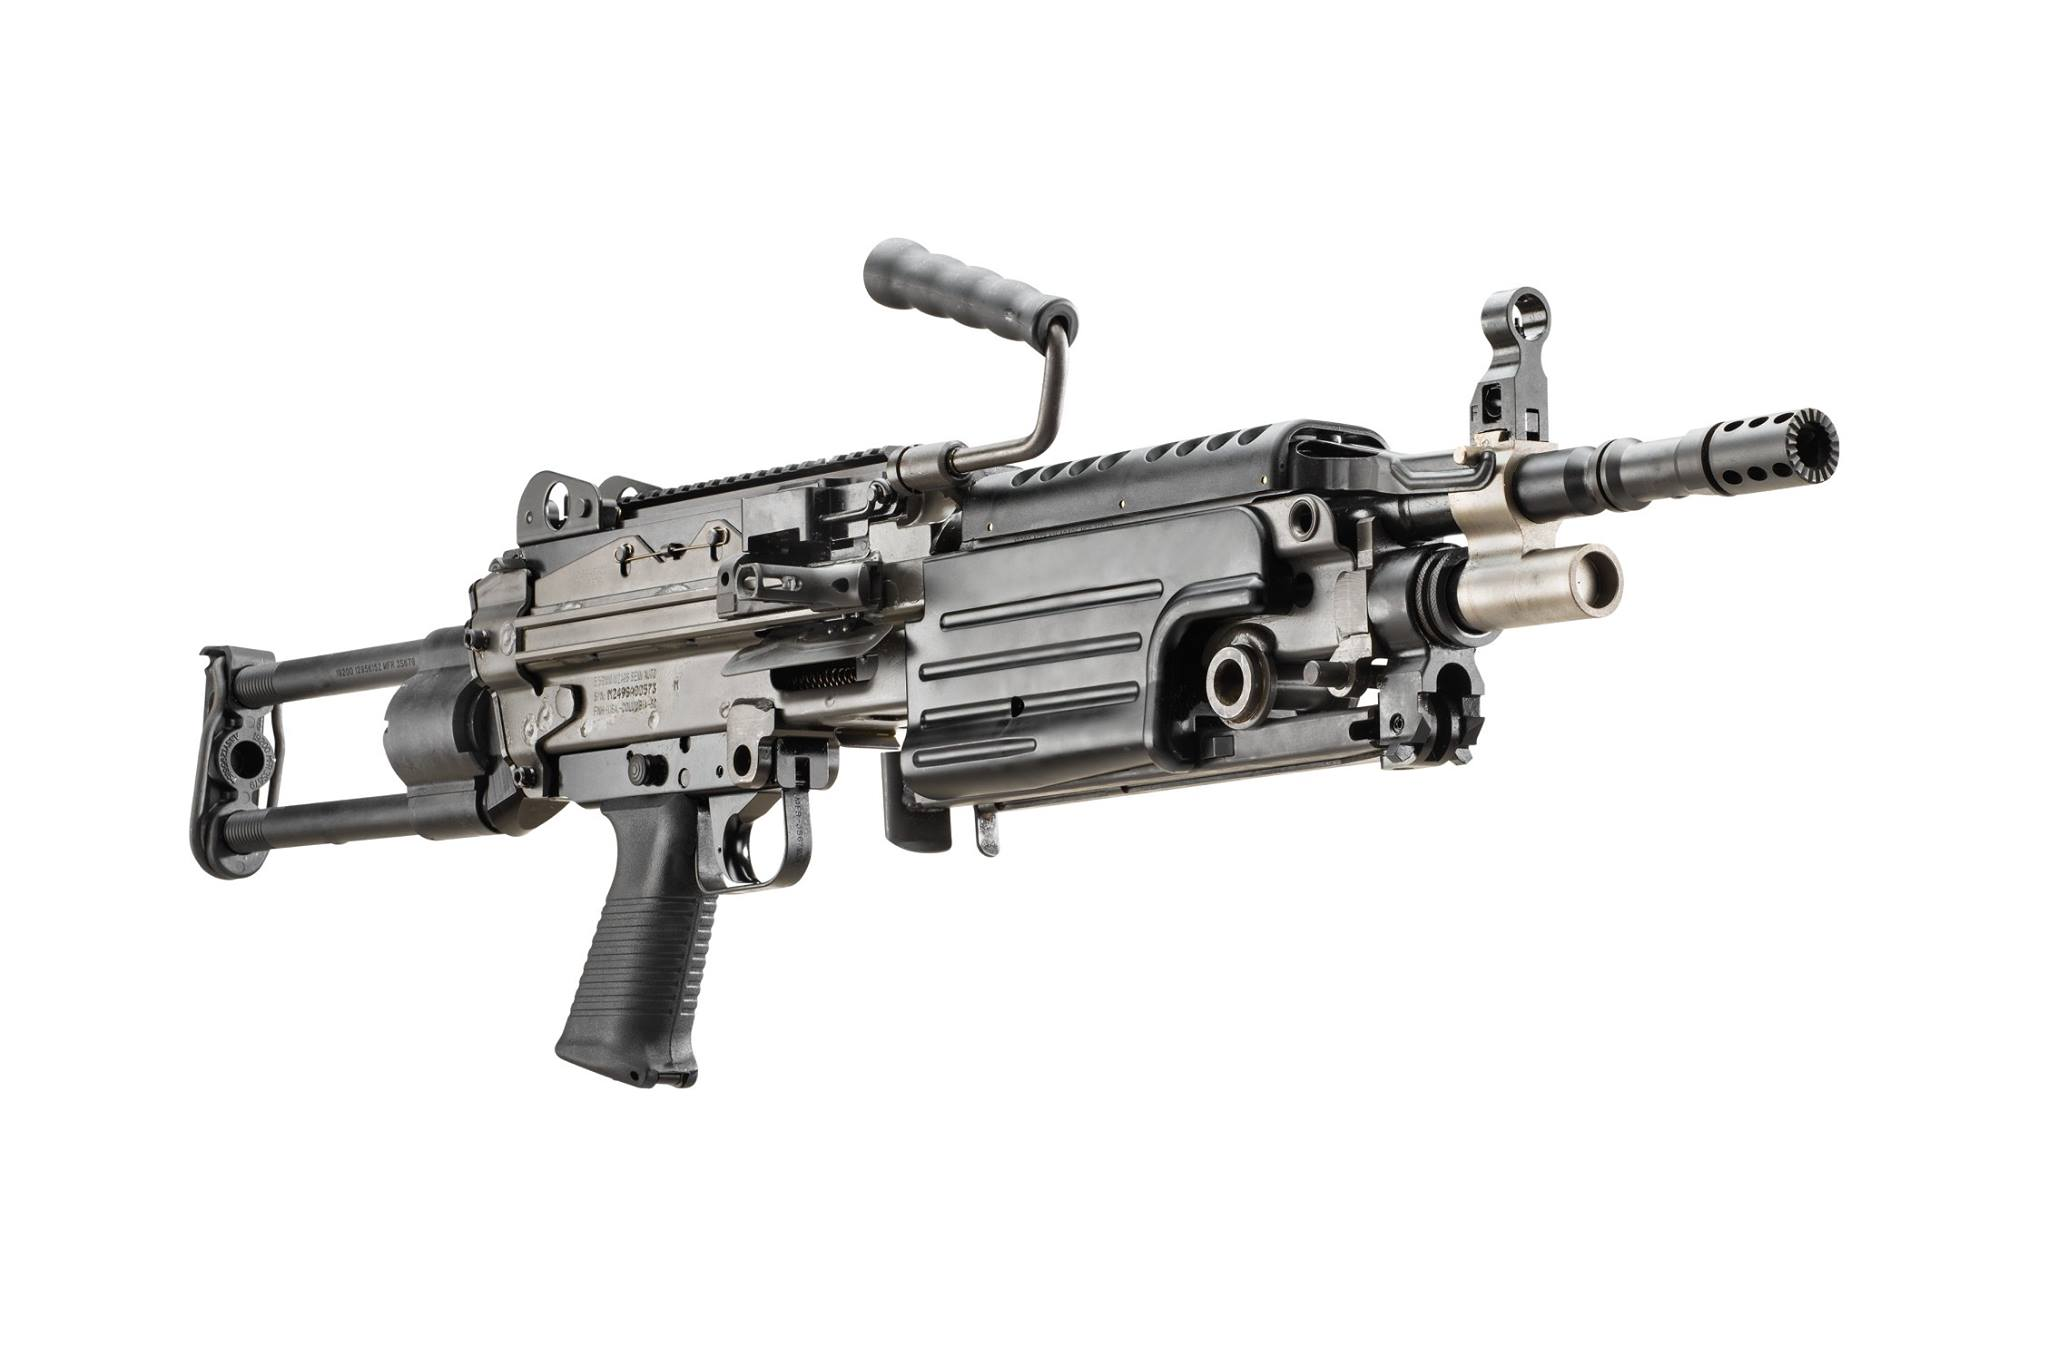 FN's new M249S Para brings a collapsible stock to the semi-auto belt-fed rifle already in their Military Collector series. (Photos: FN)